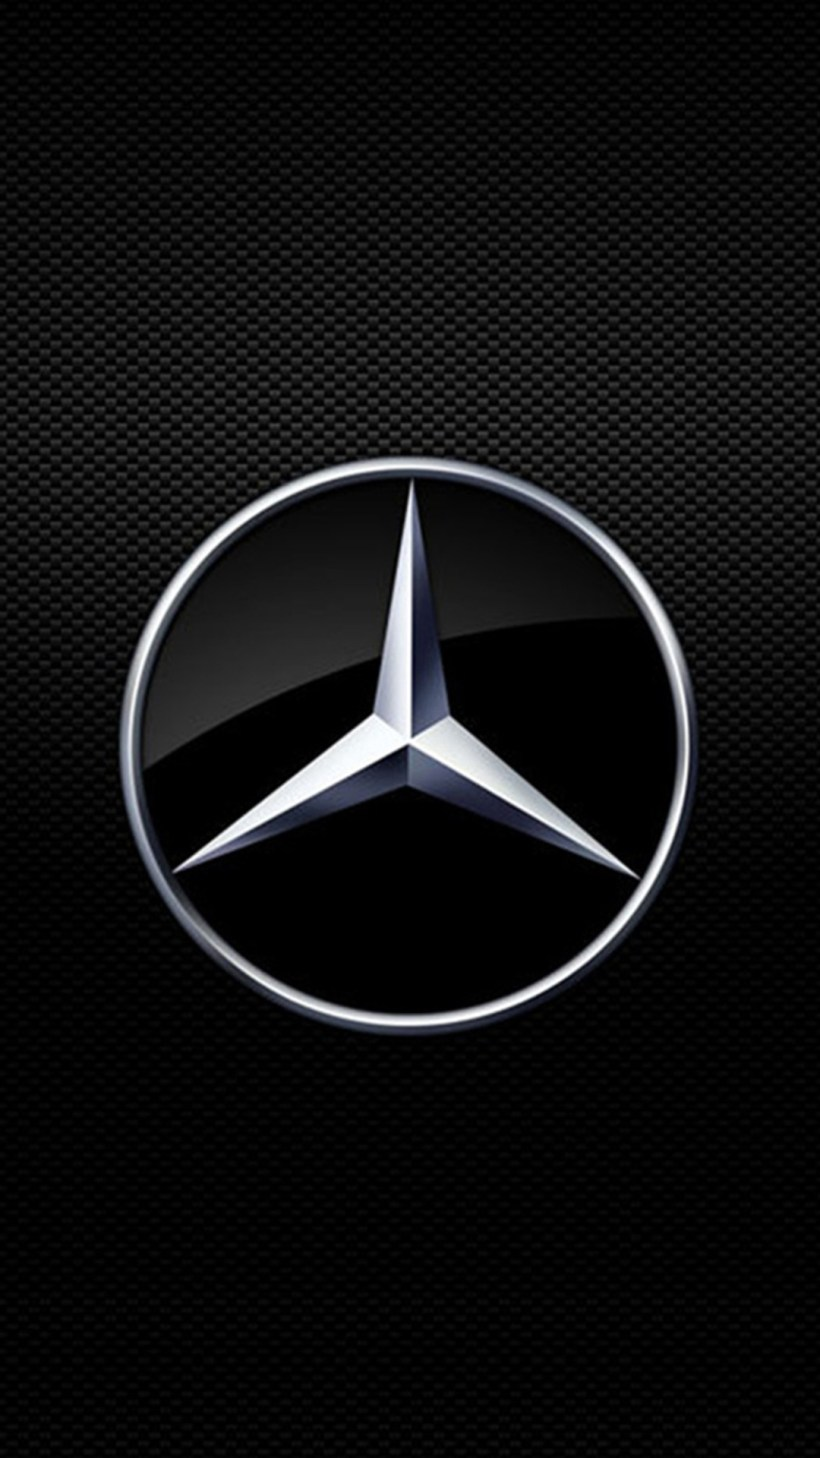 Iphone 6 wallpaper mercedes logo wallpaper images for Mercedes benz contact us